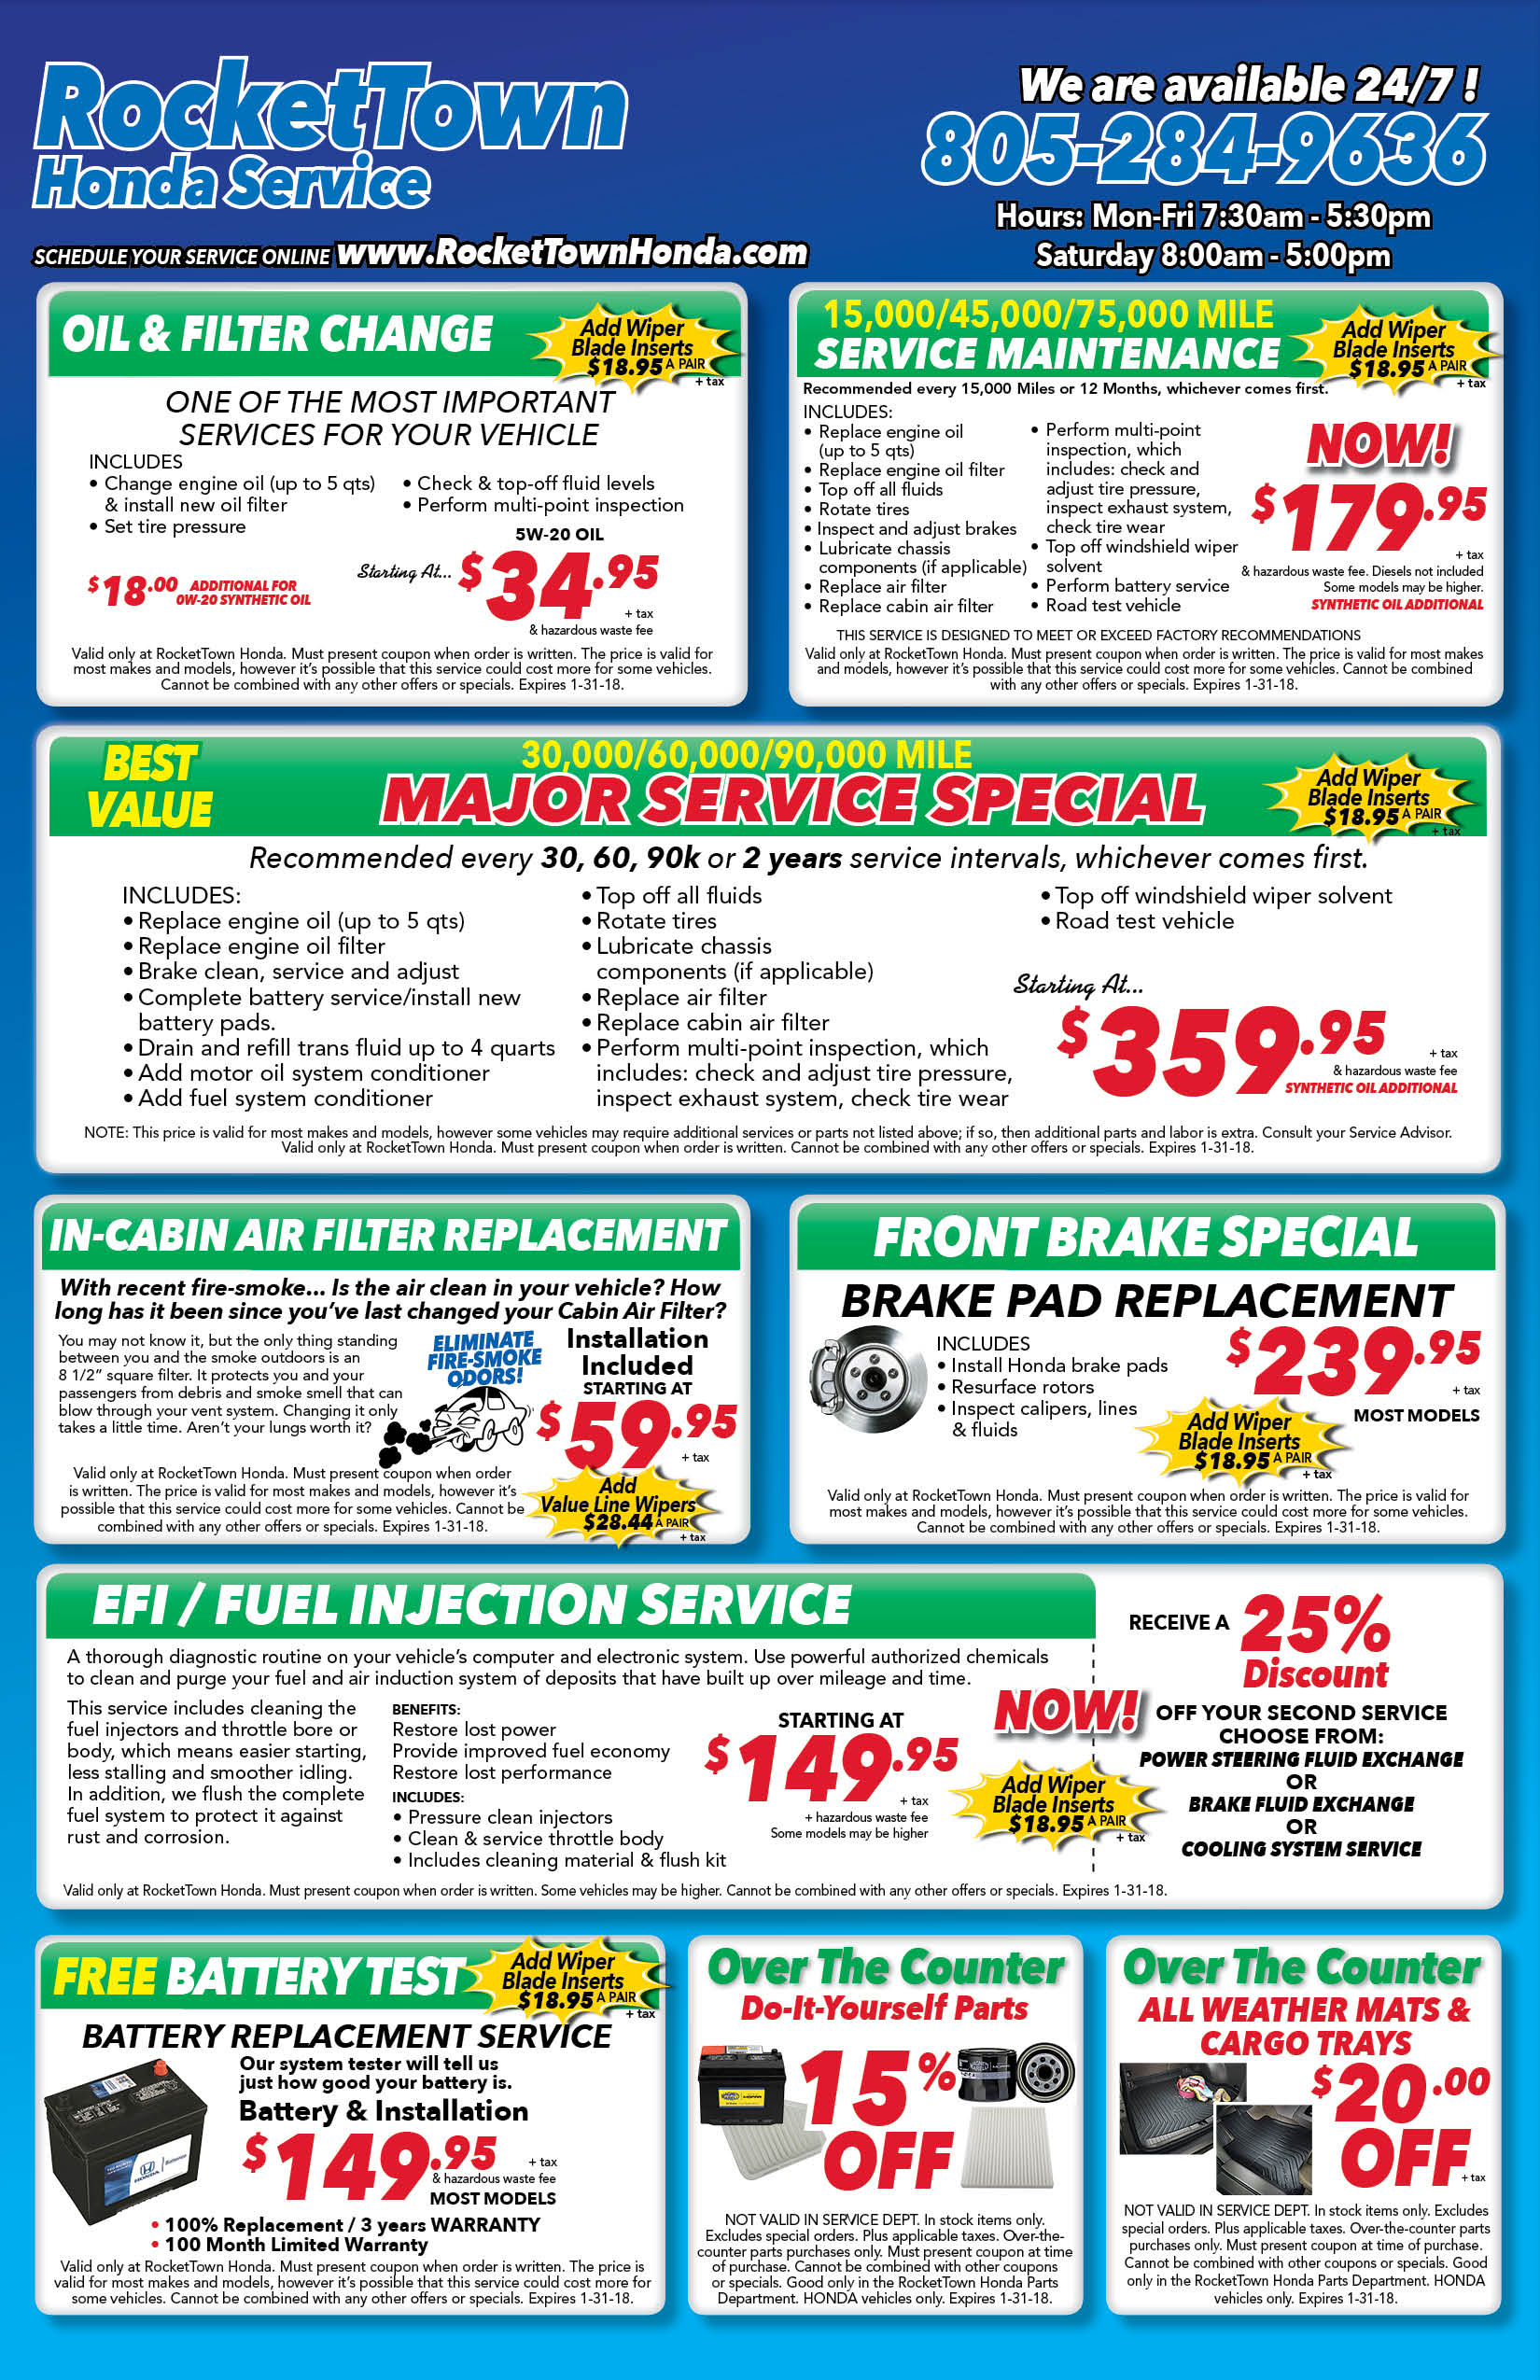 specials fluids chemicals coupons htm off honda team service on schedule